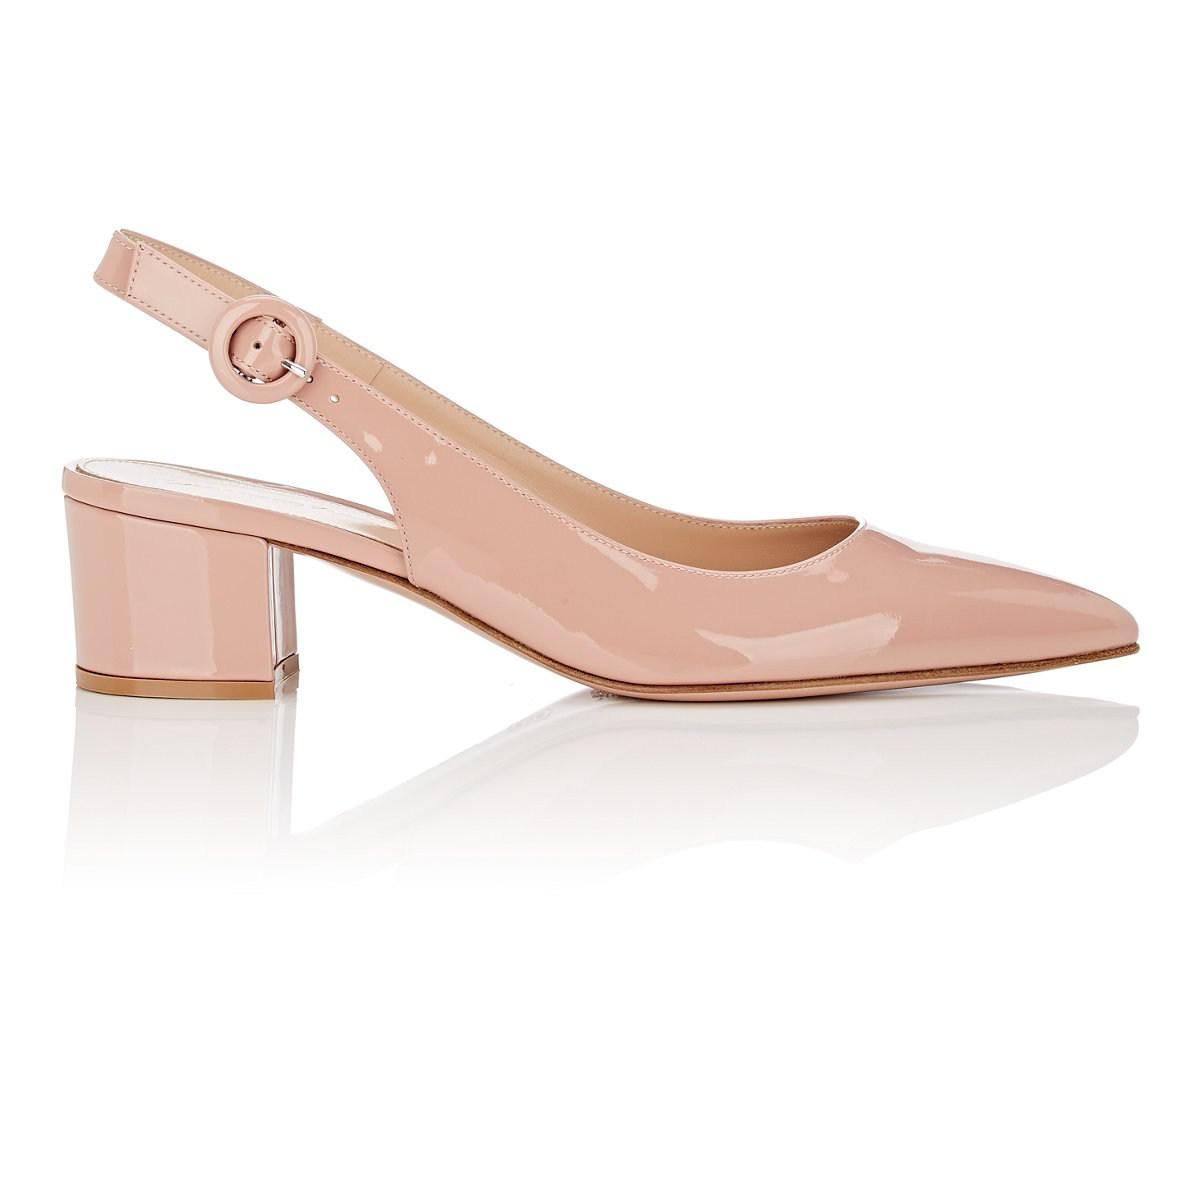 966258e21f9 Gianvito Rossi. Women s Pink Amee Patent Leather Siingback Court Shoes